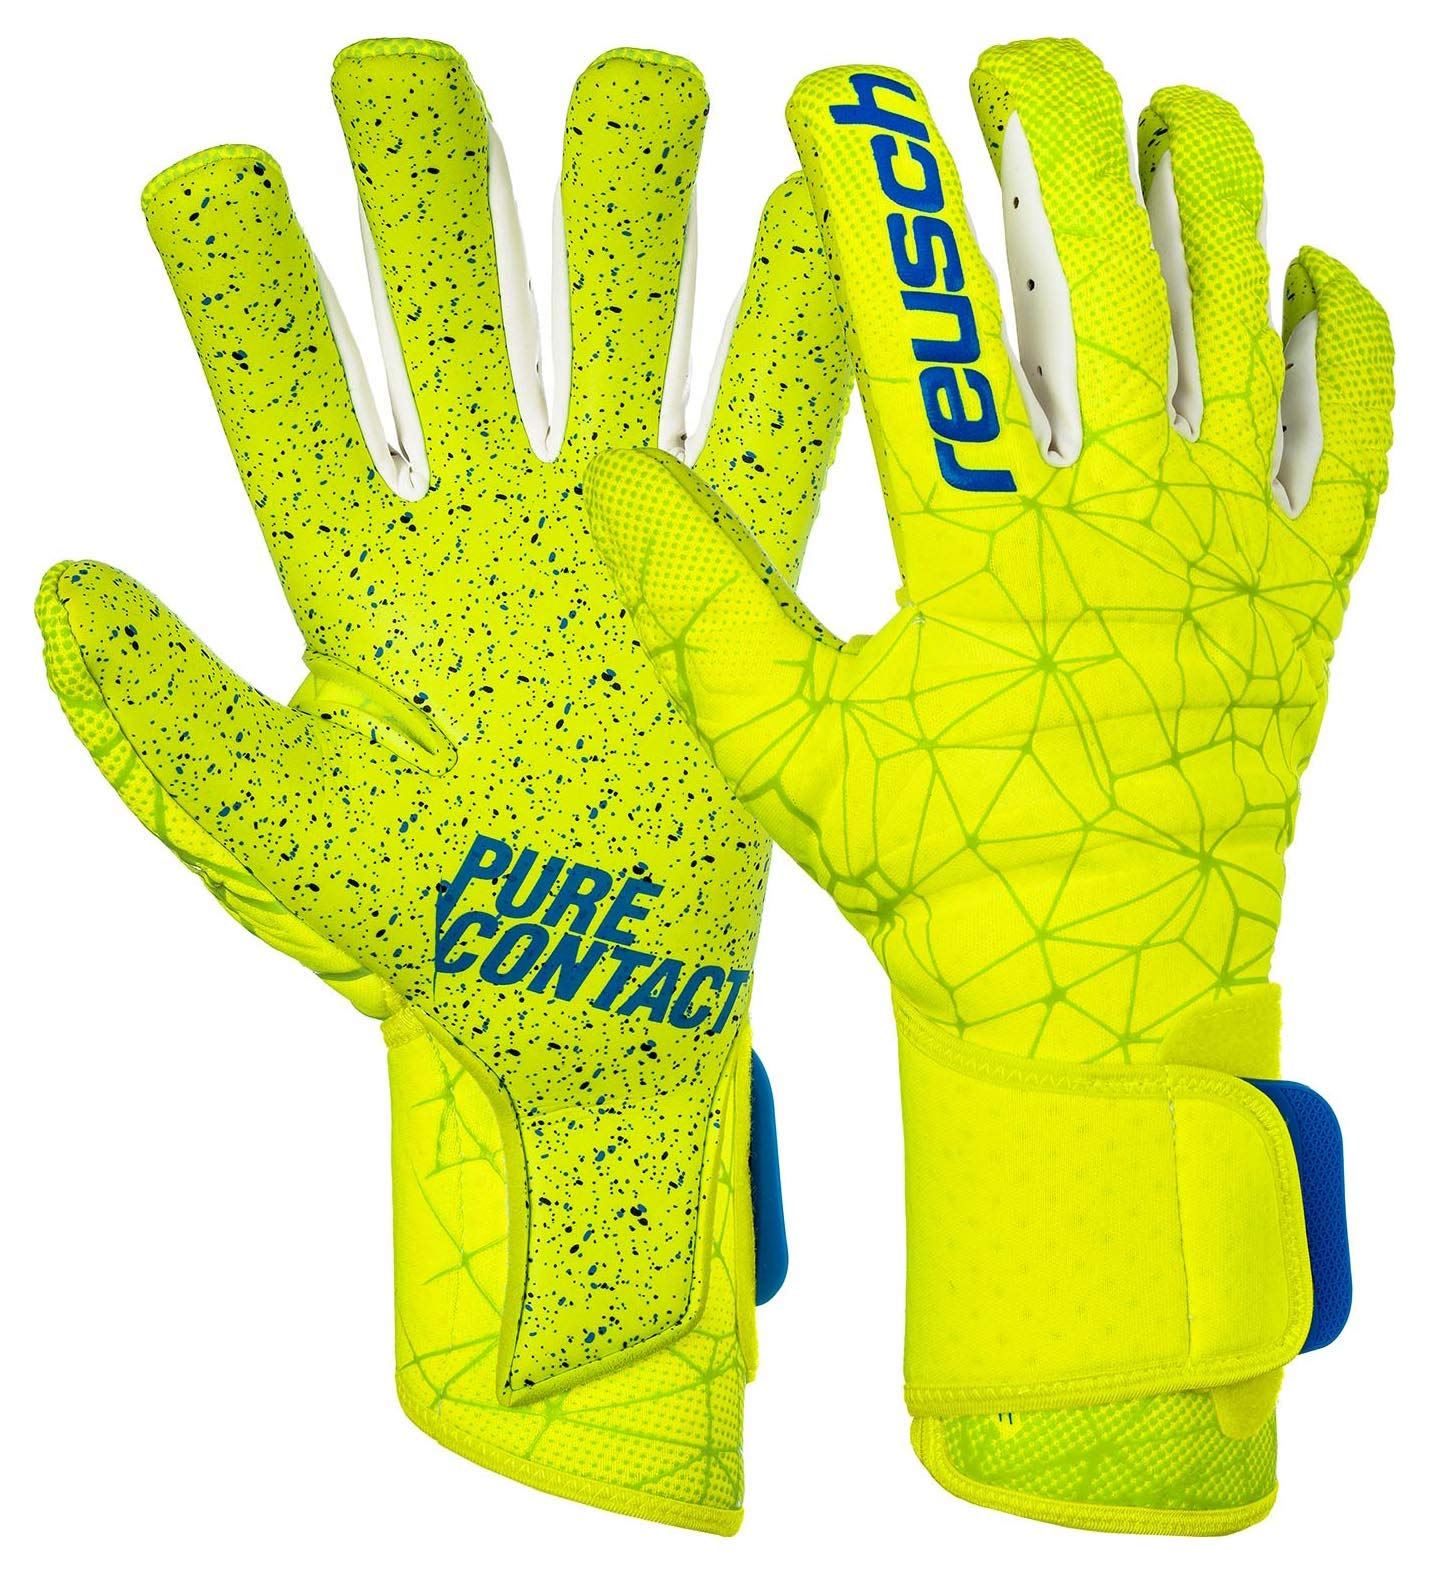 Reusch Pure Contact II G3 Fusion Goalkeeper Glove - Size 7